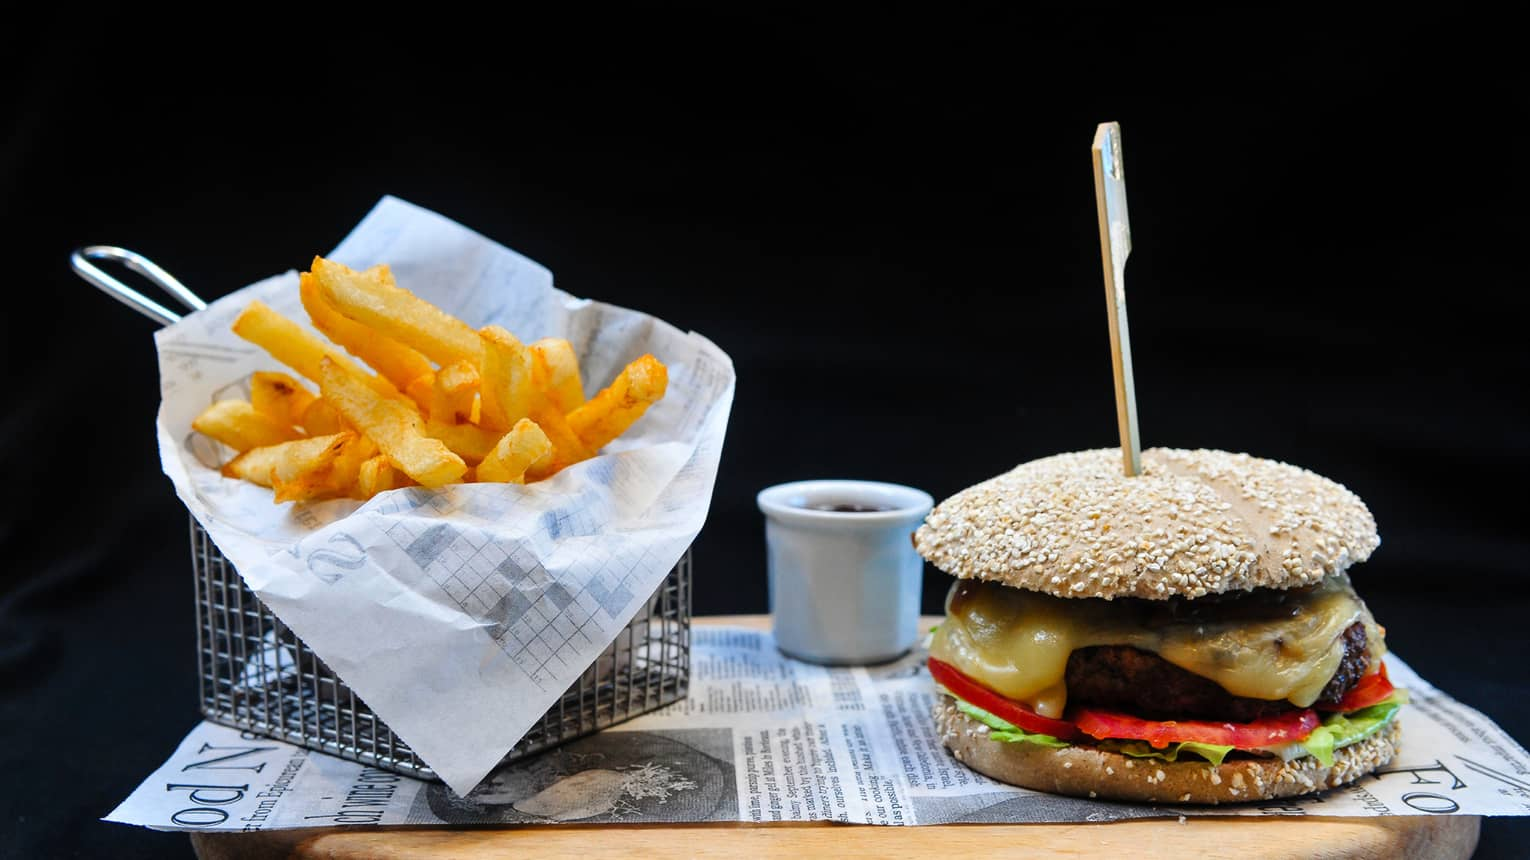 A burger with lettuce, tomato and cheese sits on a tray next to a basket of french fries